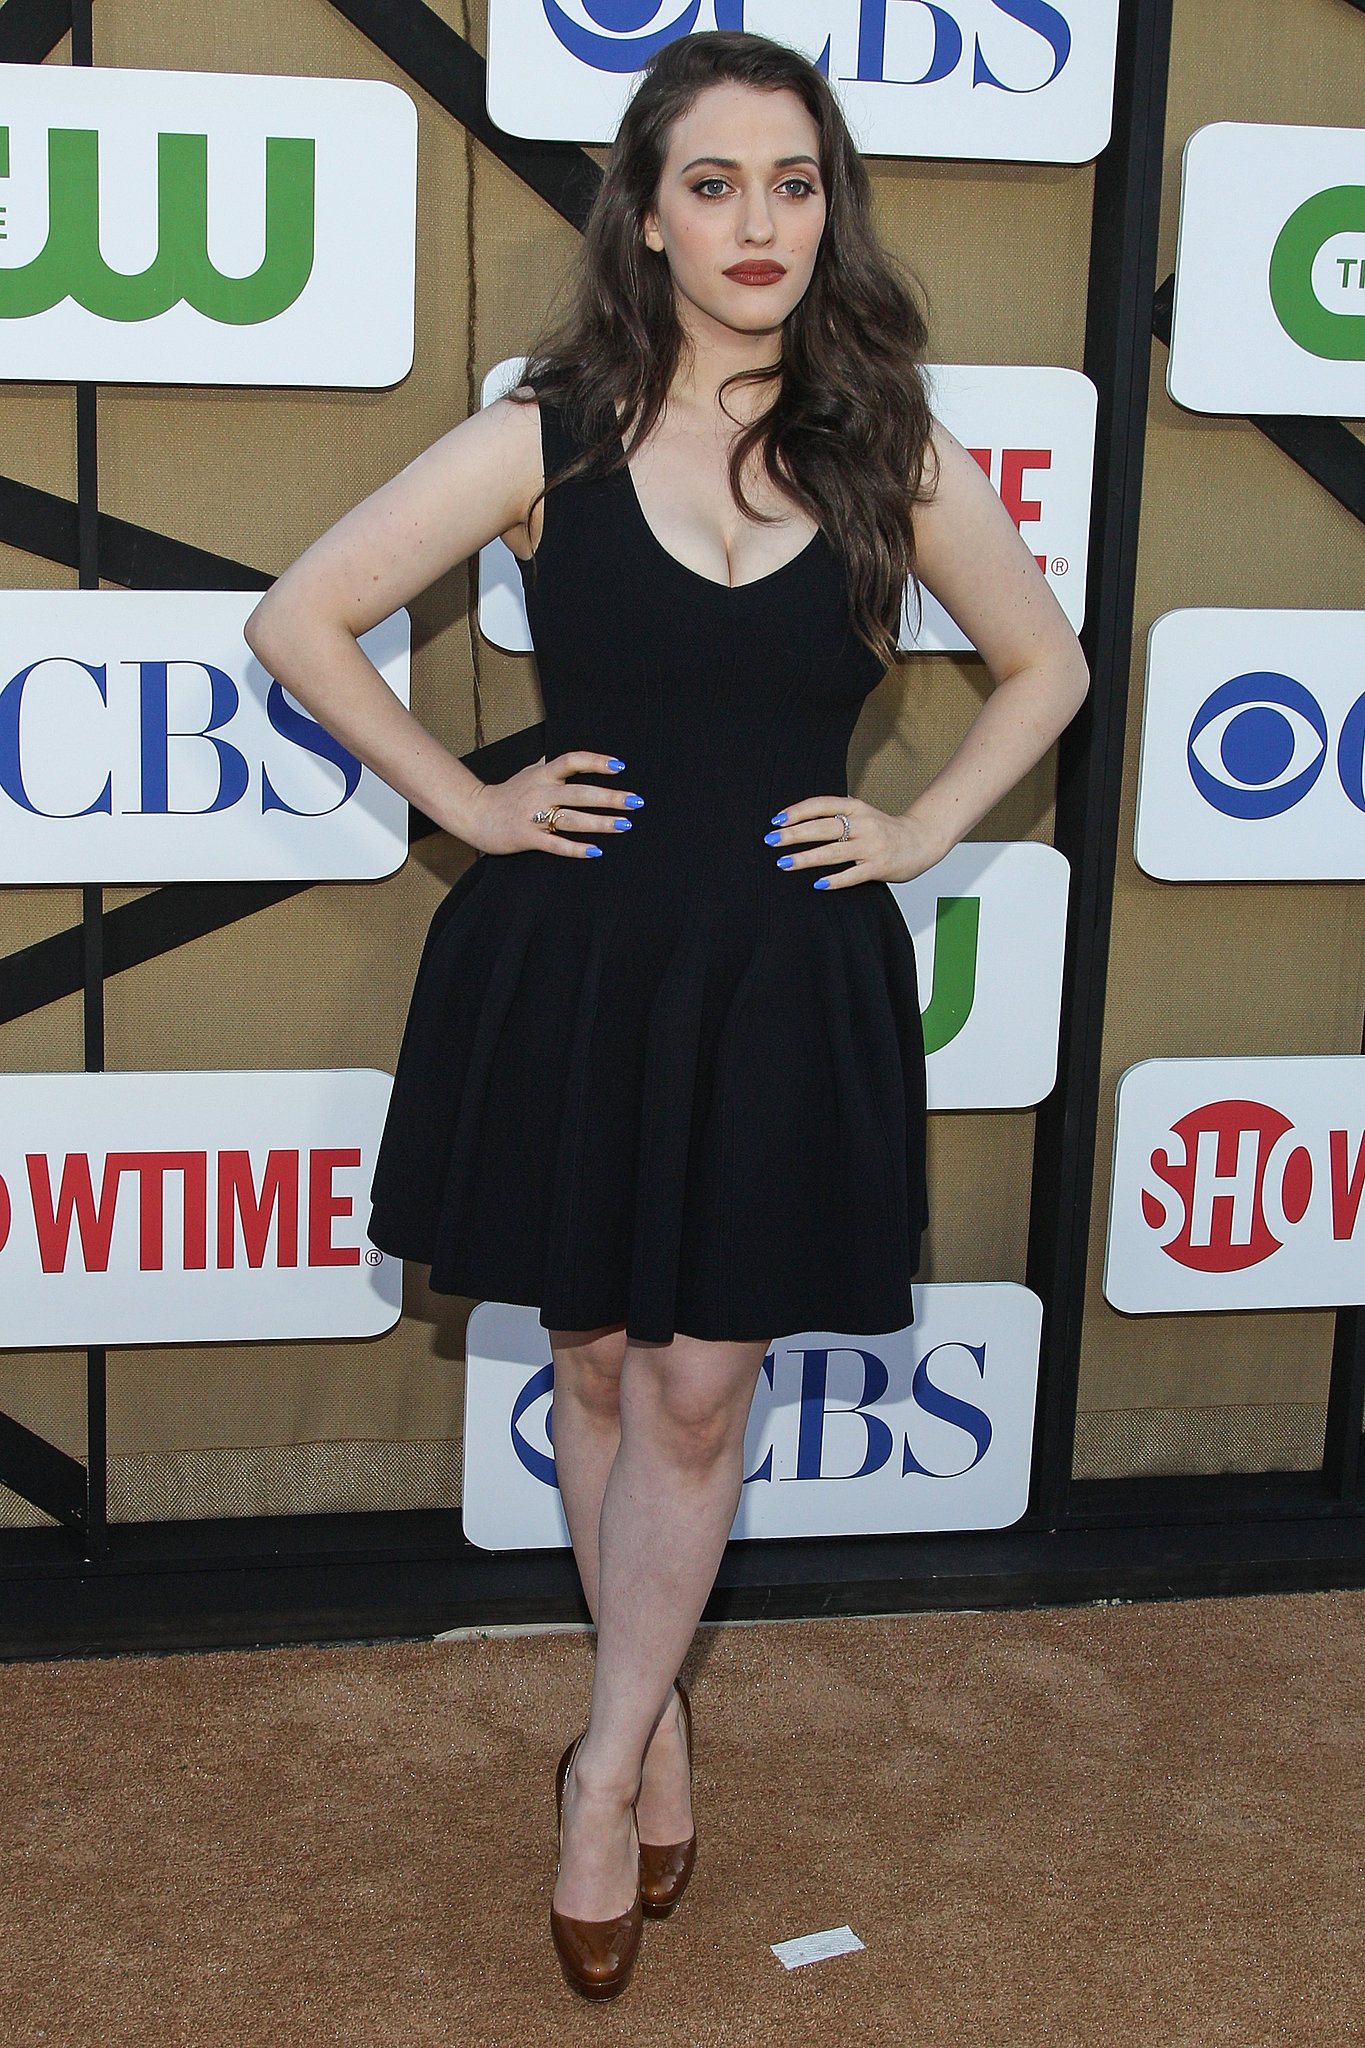 Kat Dennings posed for photos at the CW, CBS, and Showtime party.